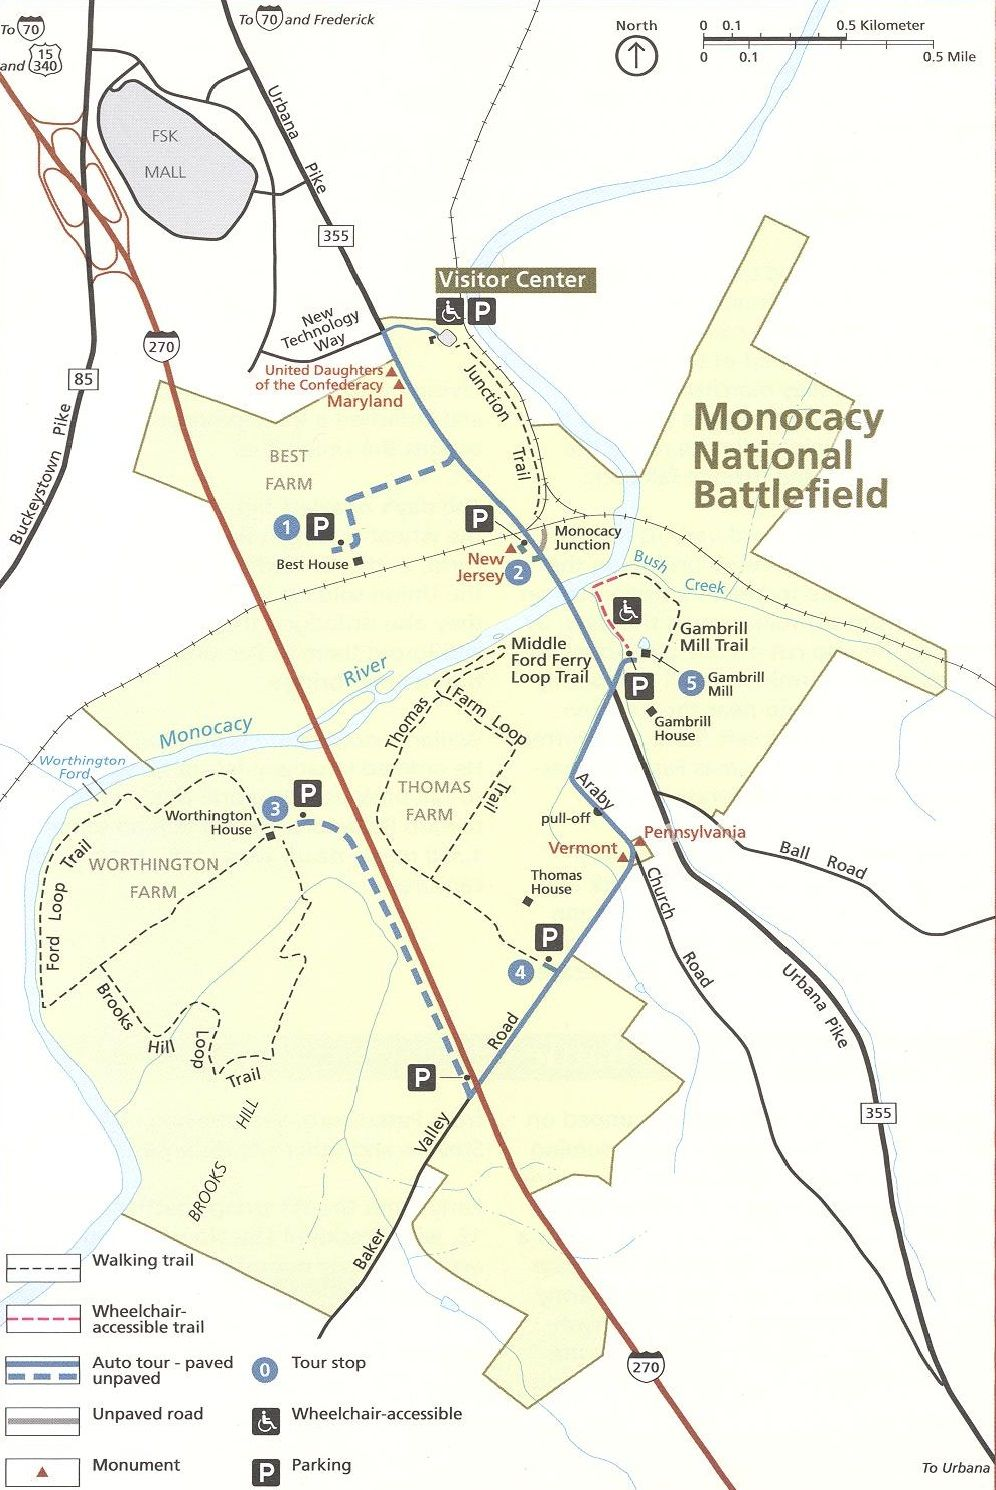 Map of Monocacy National Battlefield Battlefield